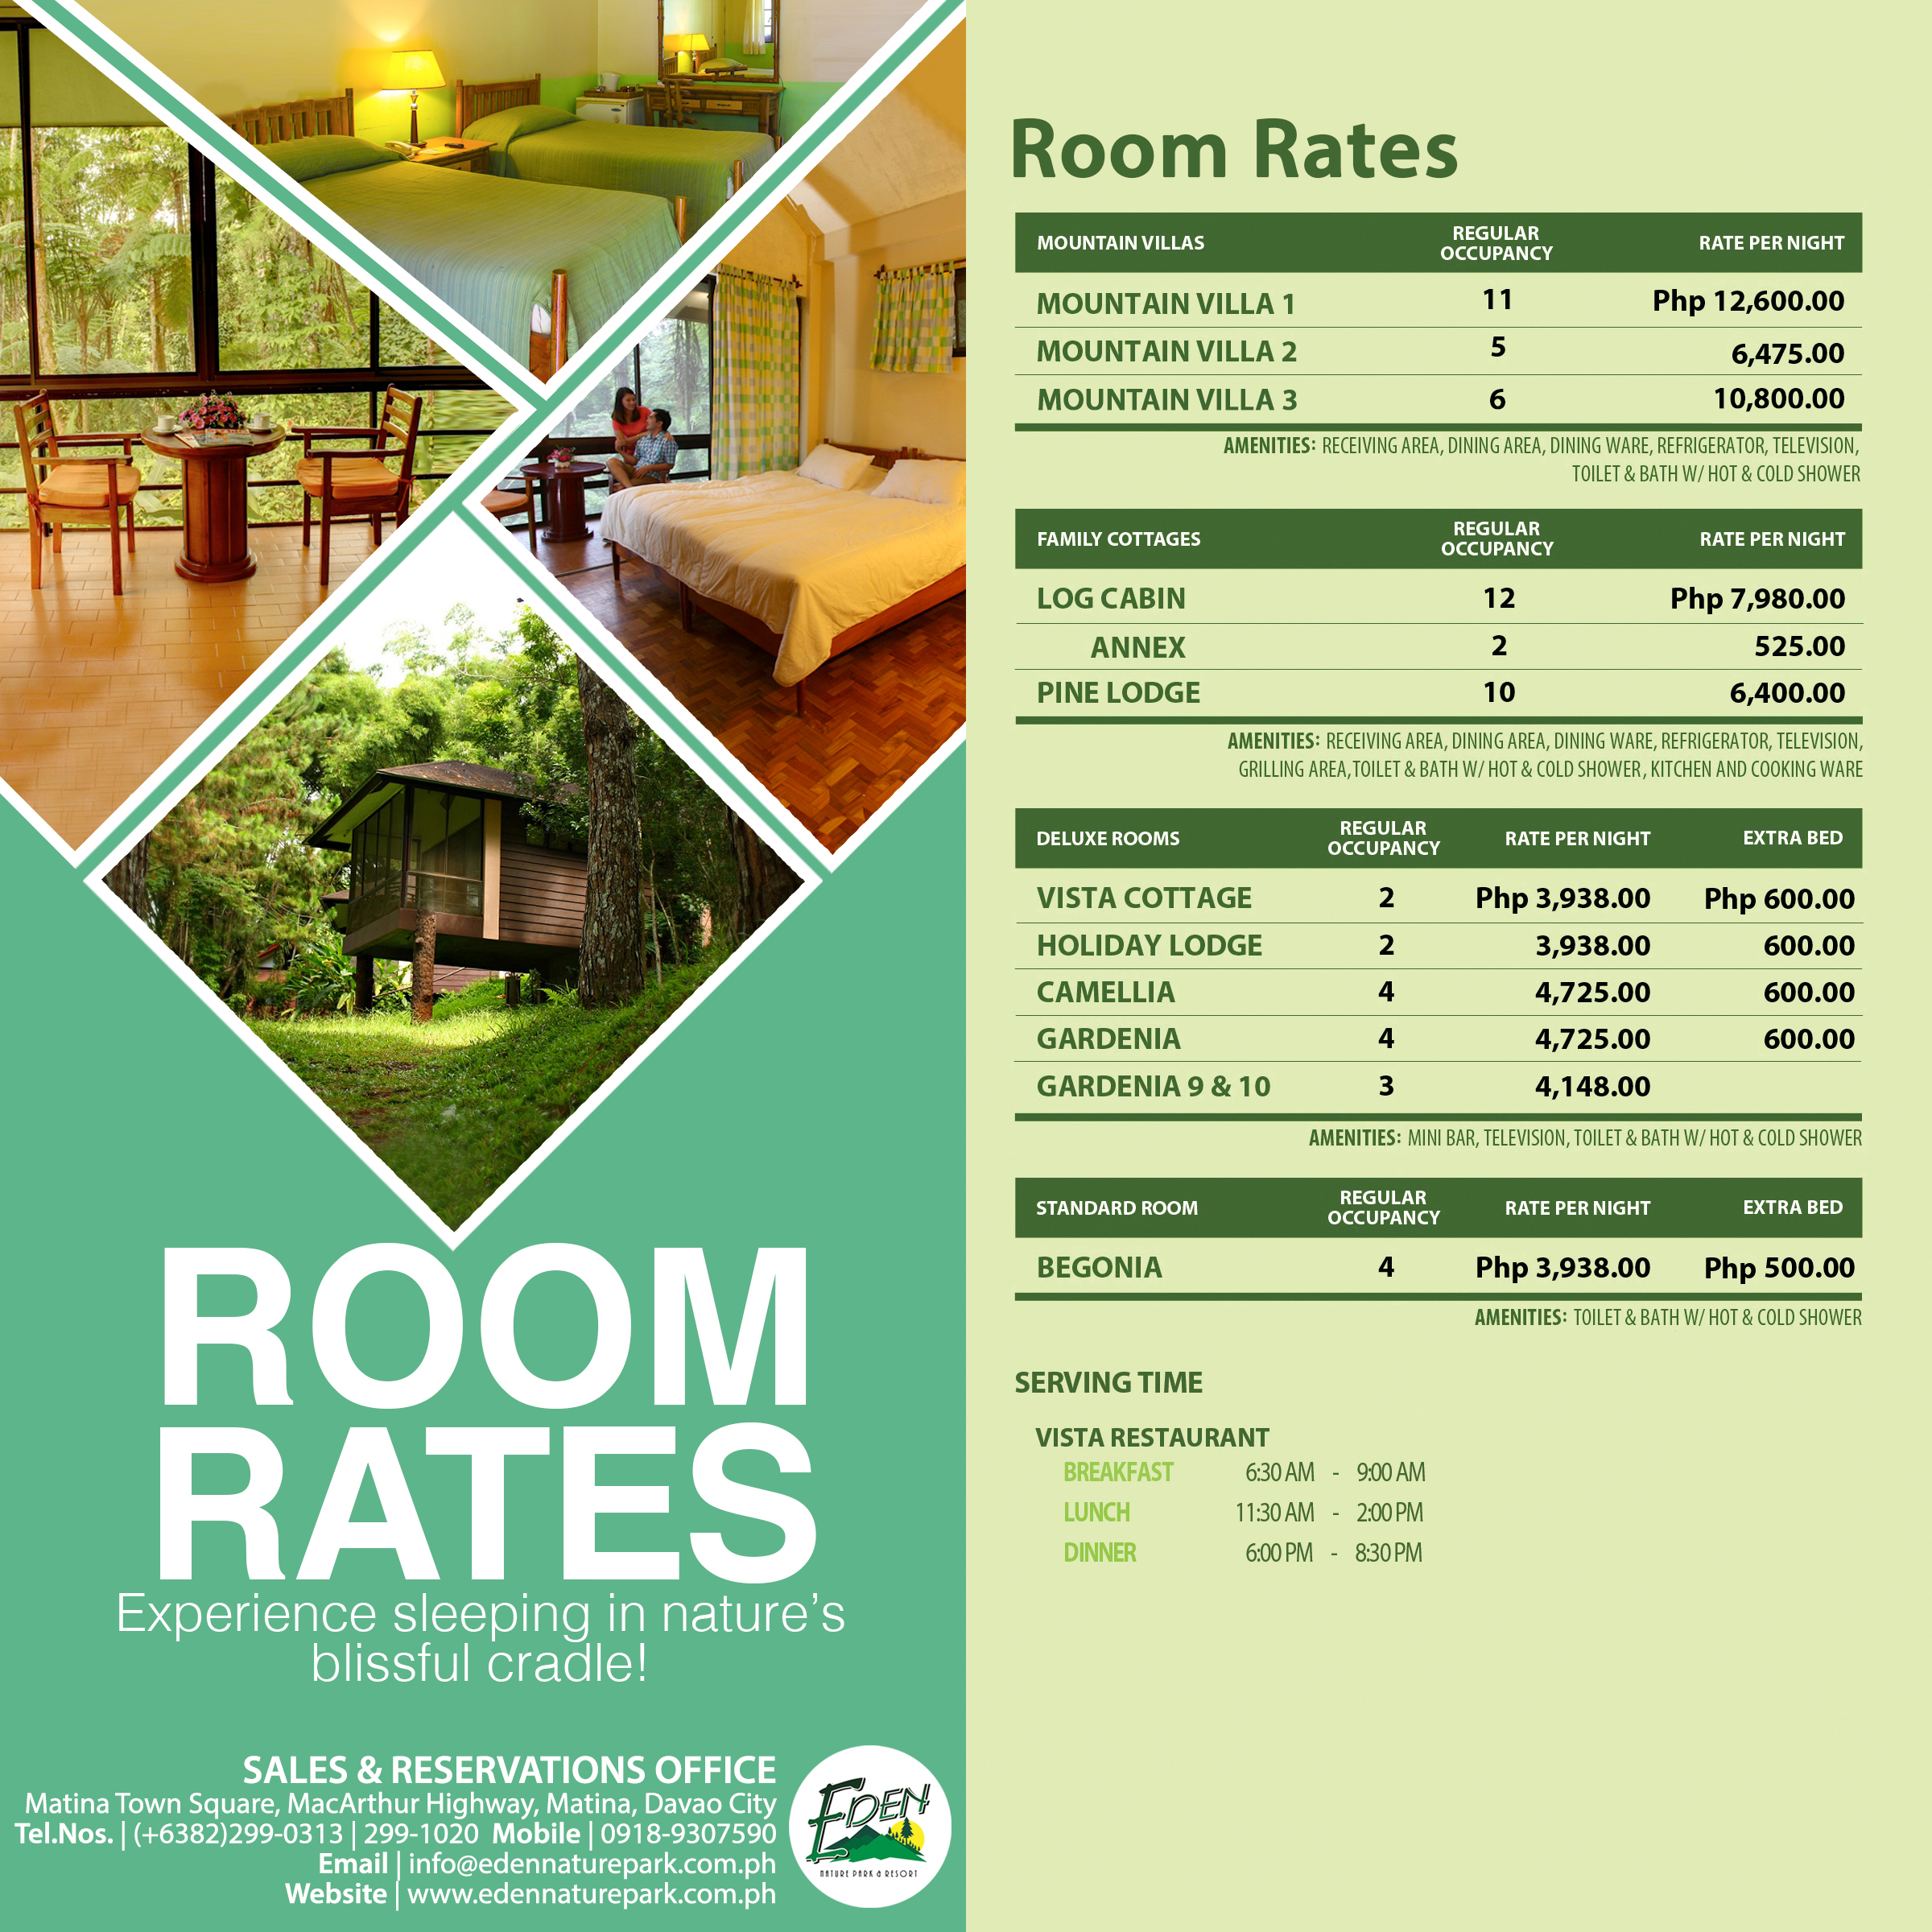 Eden Nature Park Room Rates